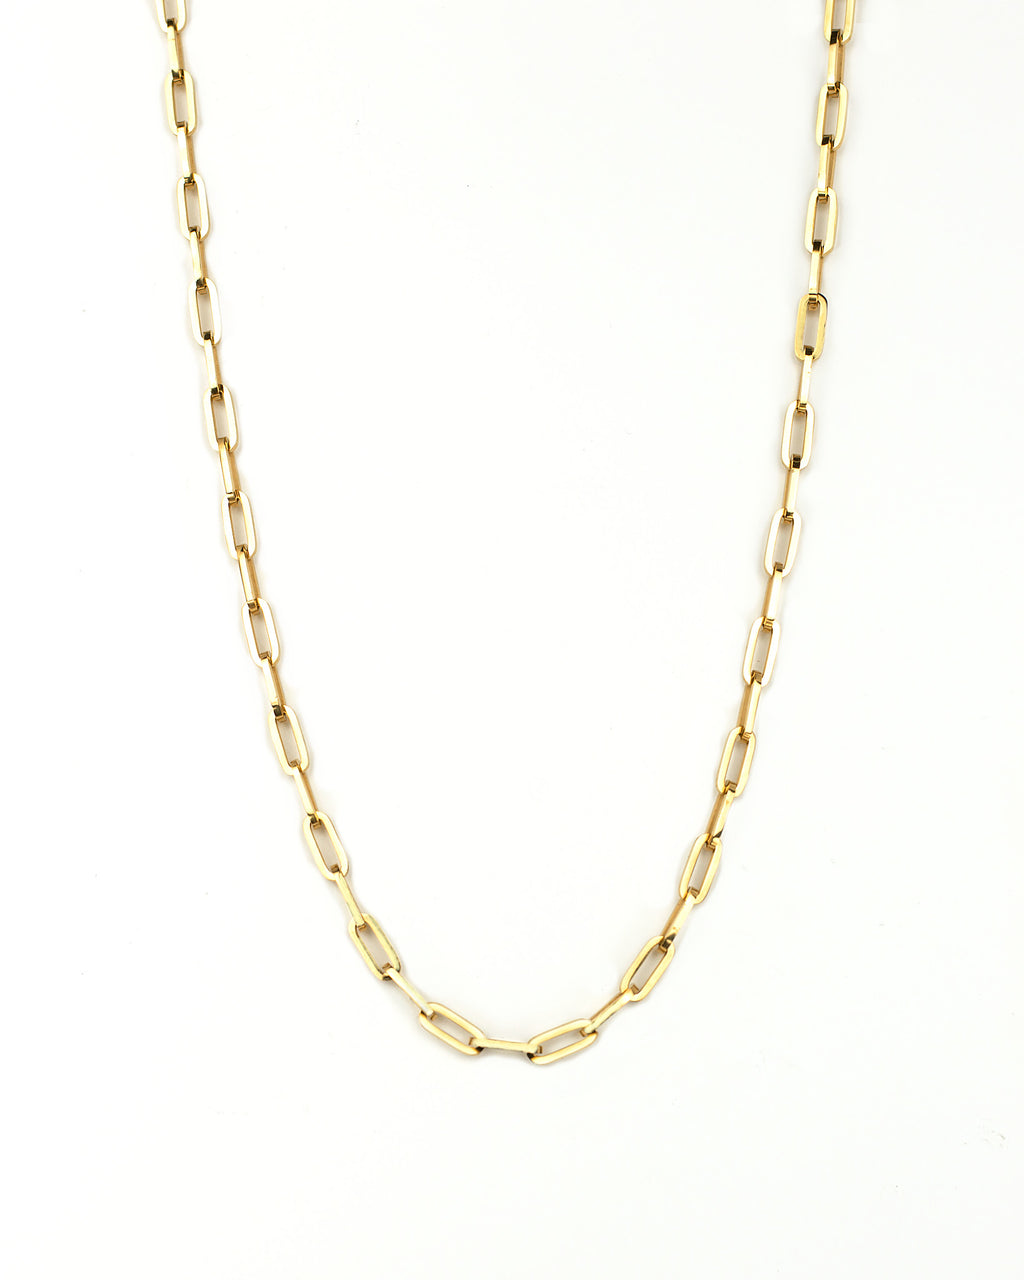 maibritt rectangle link chain necklace 18k gold plated stainless steel layering